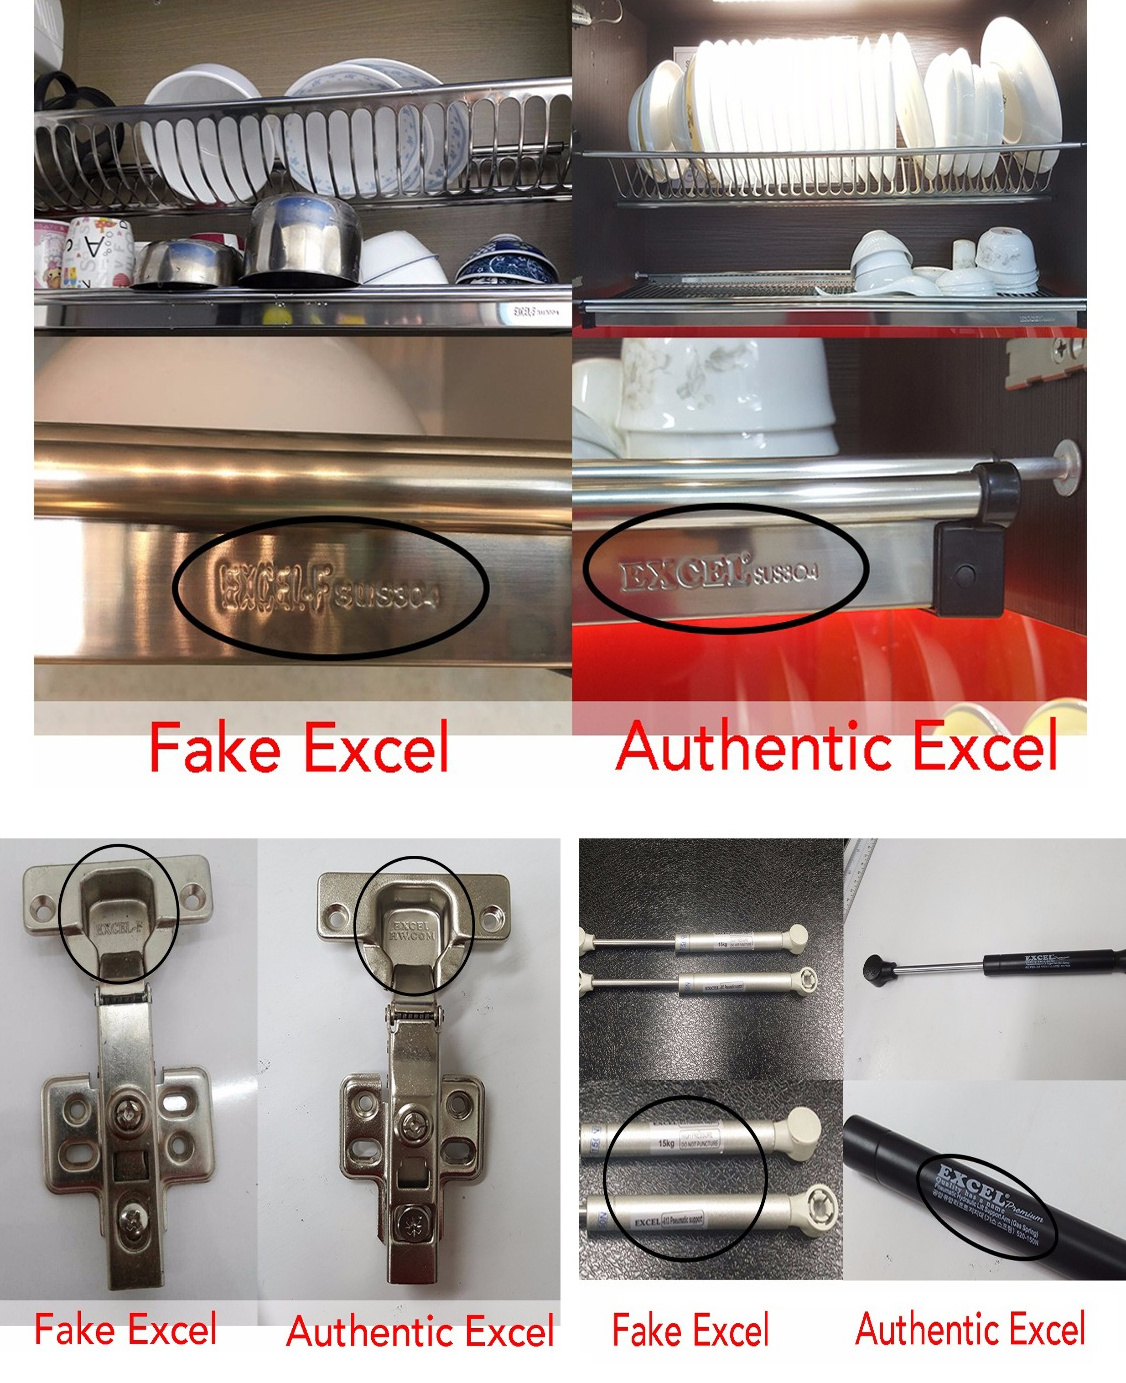 "Recent scams about Excel Hardware replicas have been taking Singapore by storm, and now the company has announced that they'd be persecuting the illegal distributors. On Jan 3rd, Director Kaden Choa declared that Excel Hardware Pte Ltd will make the identity of those who manufacture, distribute or install counterfeit Excel Hardware products such as fake stainless steel dish rack, fake pneumatic arm, fake soft close hinges public news. He said his company is working closely with Amarick Gill LLC to take legal action towards potential violators of the fraudulent activity. ""We will name and shame whoever is doing this,"" was announced by the Director. Moreover, he addressed that the company was proceeding with the lawsuit hand-in-hand with all legal and serviceable distributors in the renovation community. Here's what he said: ""This legal lawsuit is proceeding with the input of the distributor of the product, as well as carpentry workshops, renovation firms, architecture firms, developers and homeowners using Counterfeit Excel Hardware Products."""